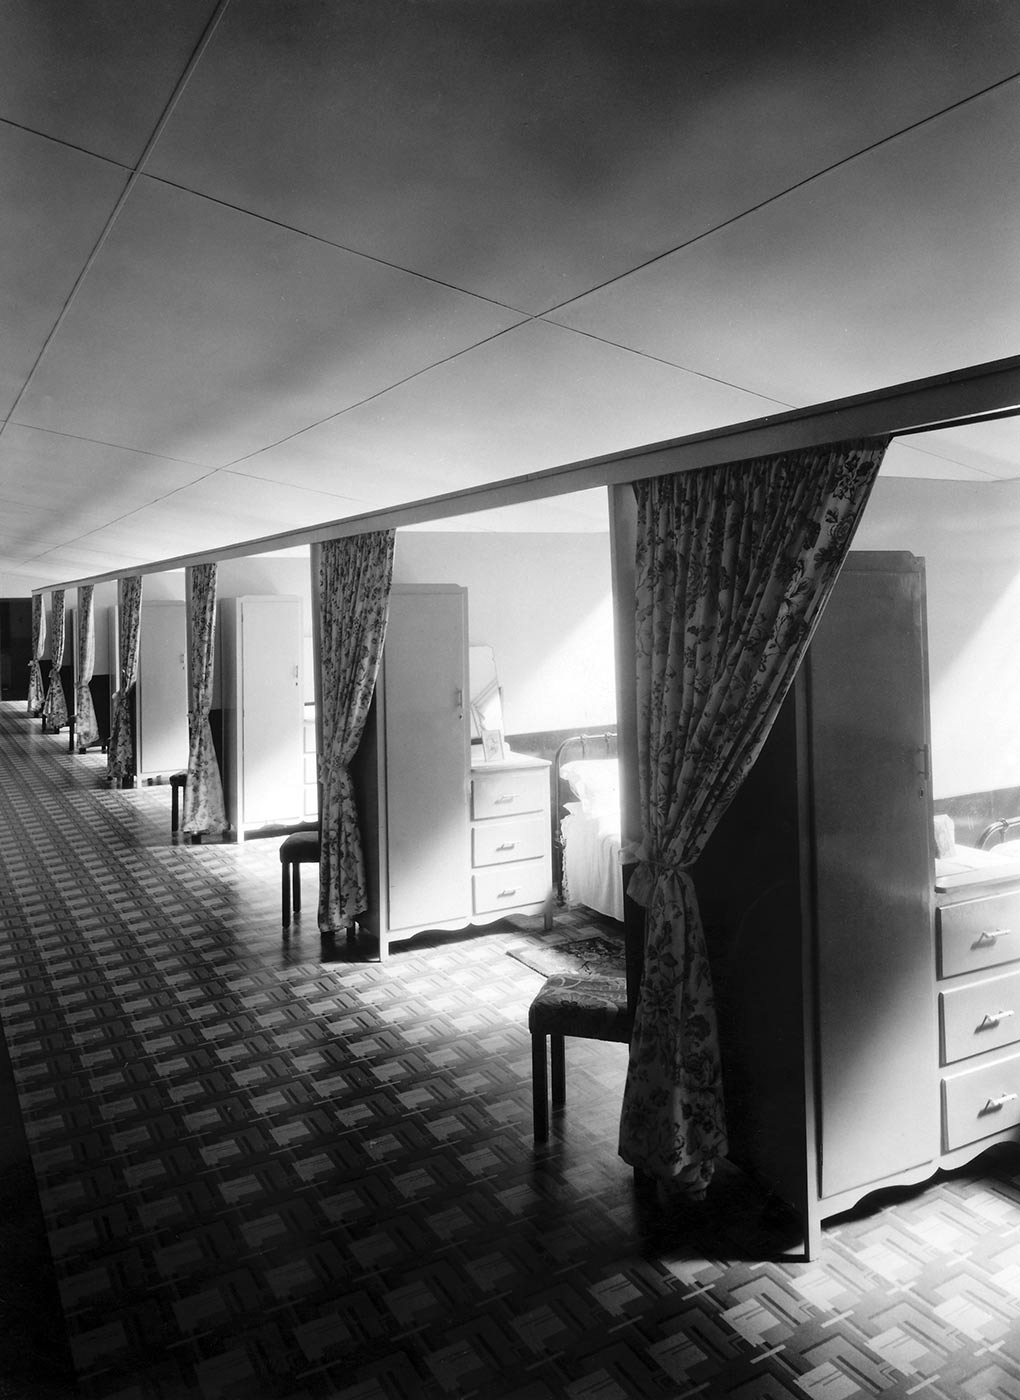 Black and white photograph showing a row of identical partitioned rooms. A high, narrow cupboard sits just inside each, with a chair sitting at an angle, under a curtain. A bedside table and bed is partially visible in the second partition from the front. - click to view larger image